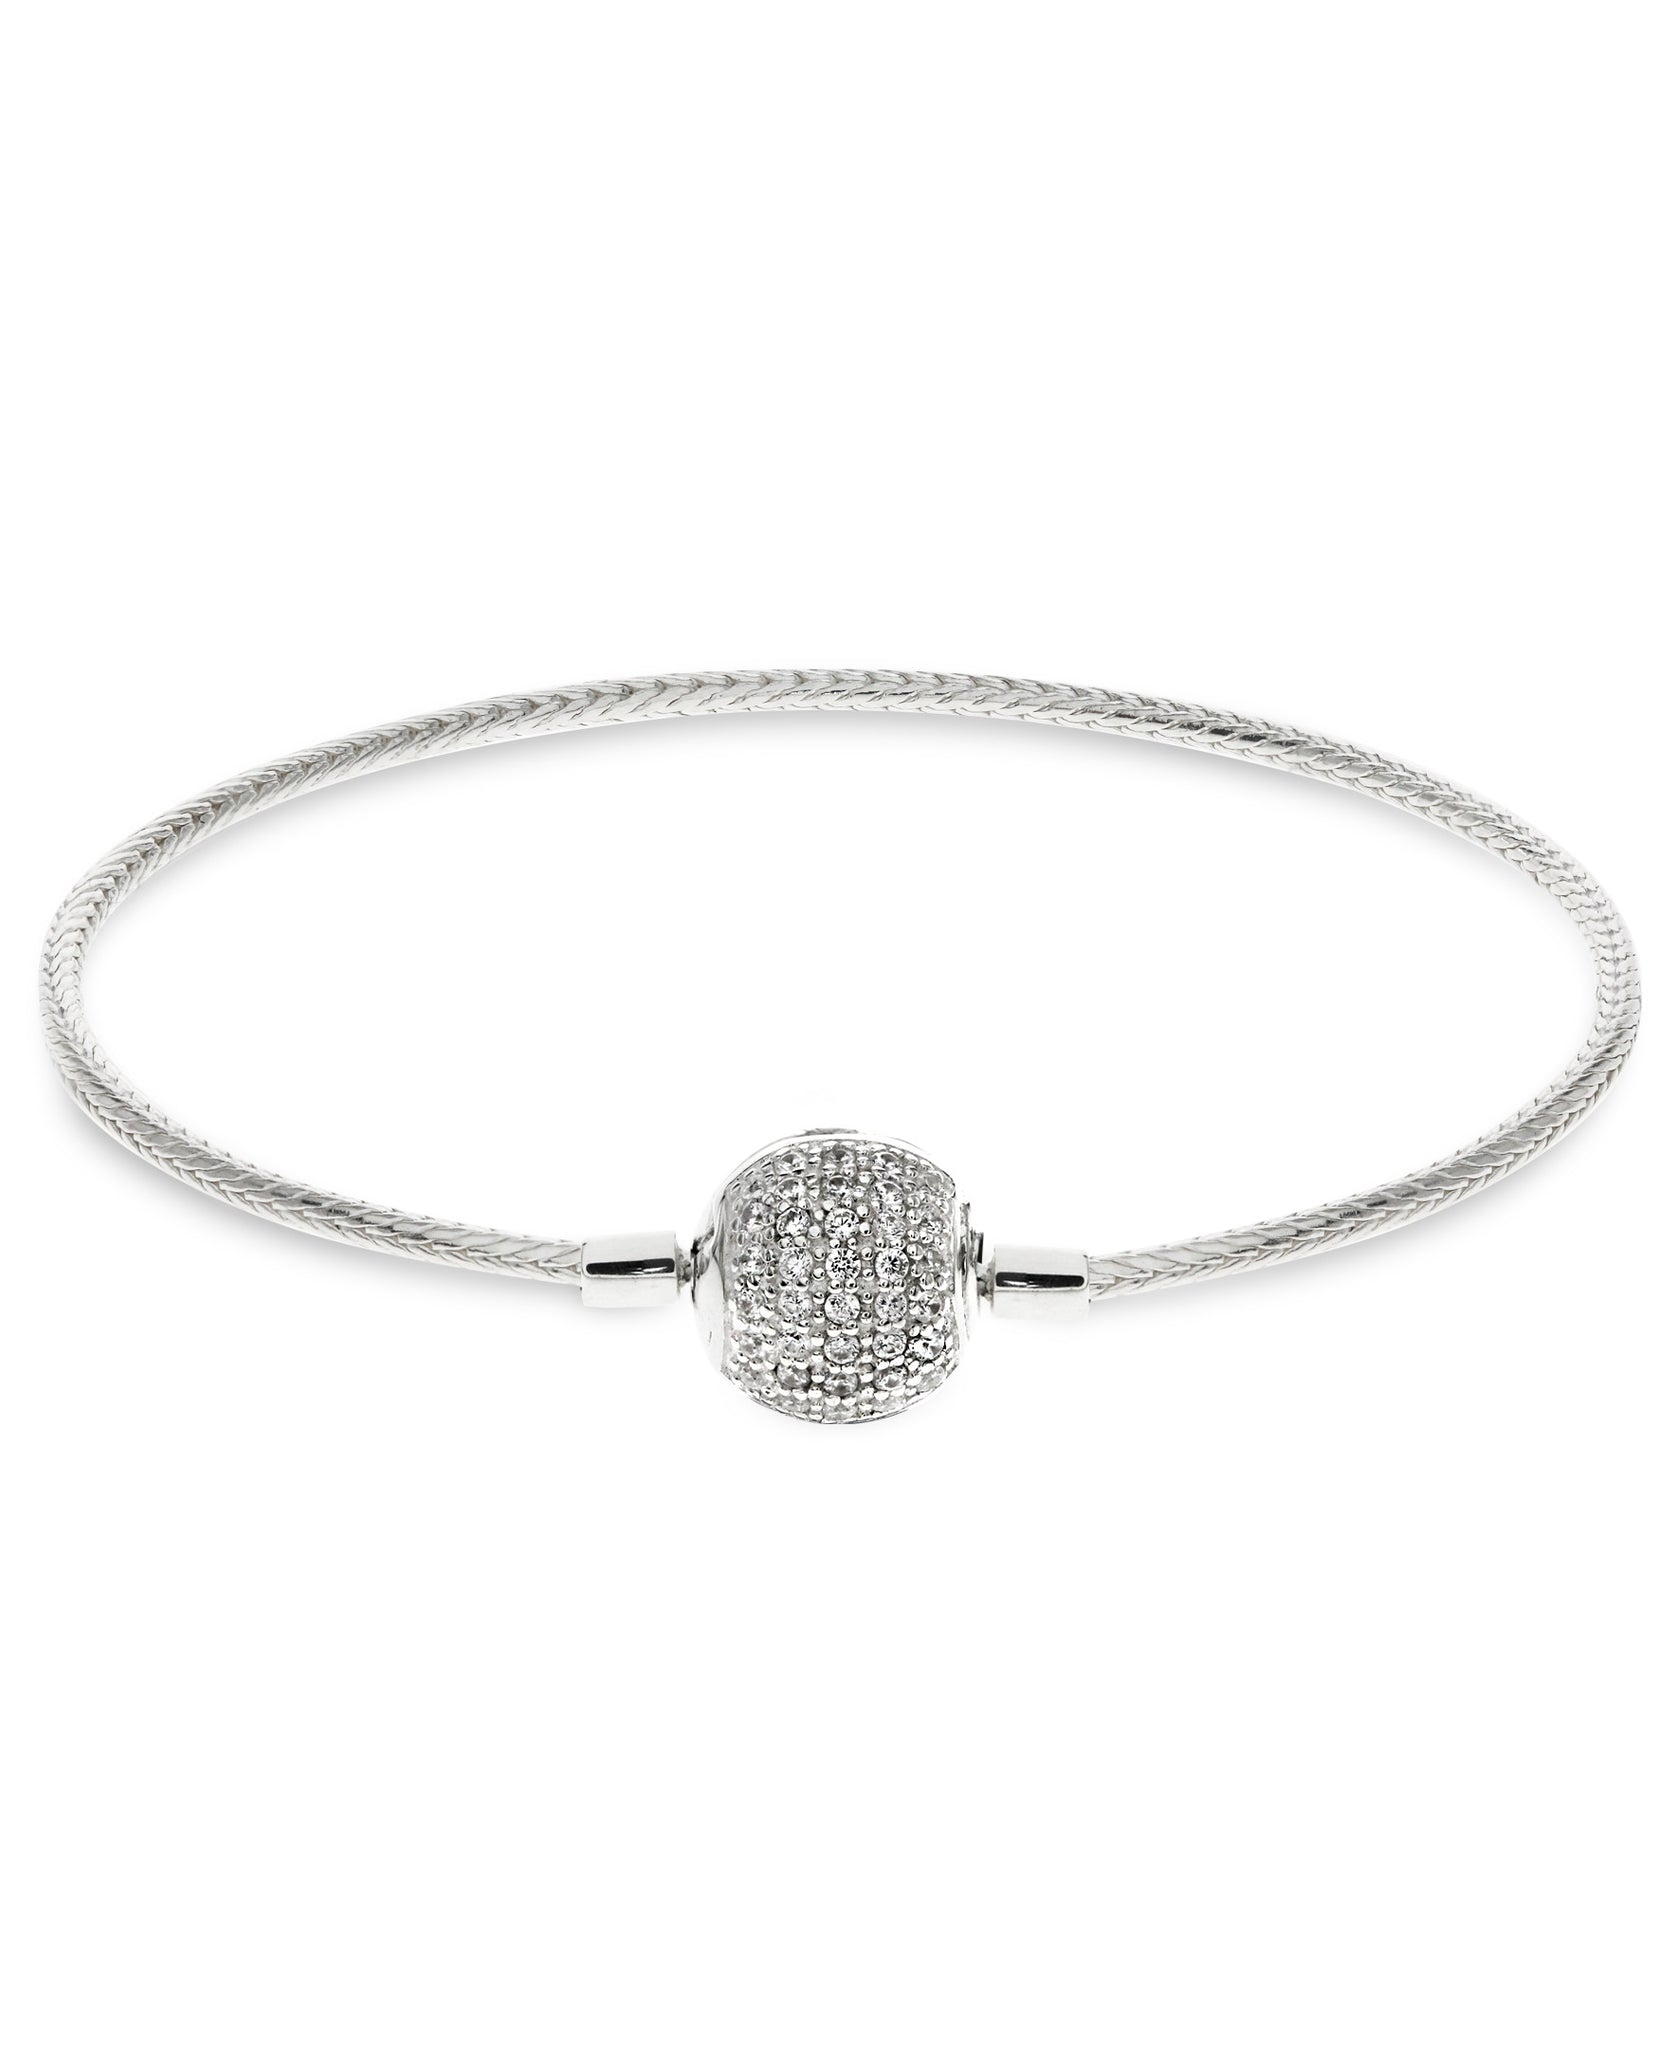 Children's Sterling Silver Pavé Clasp Snake Chain Charm Carrier Bracelet - Rhona Sutton Jewellery